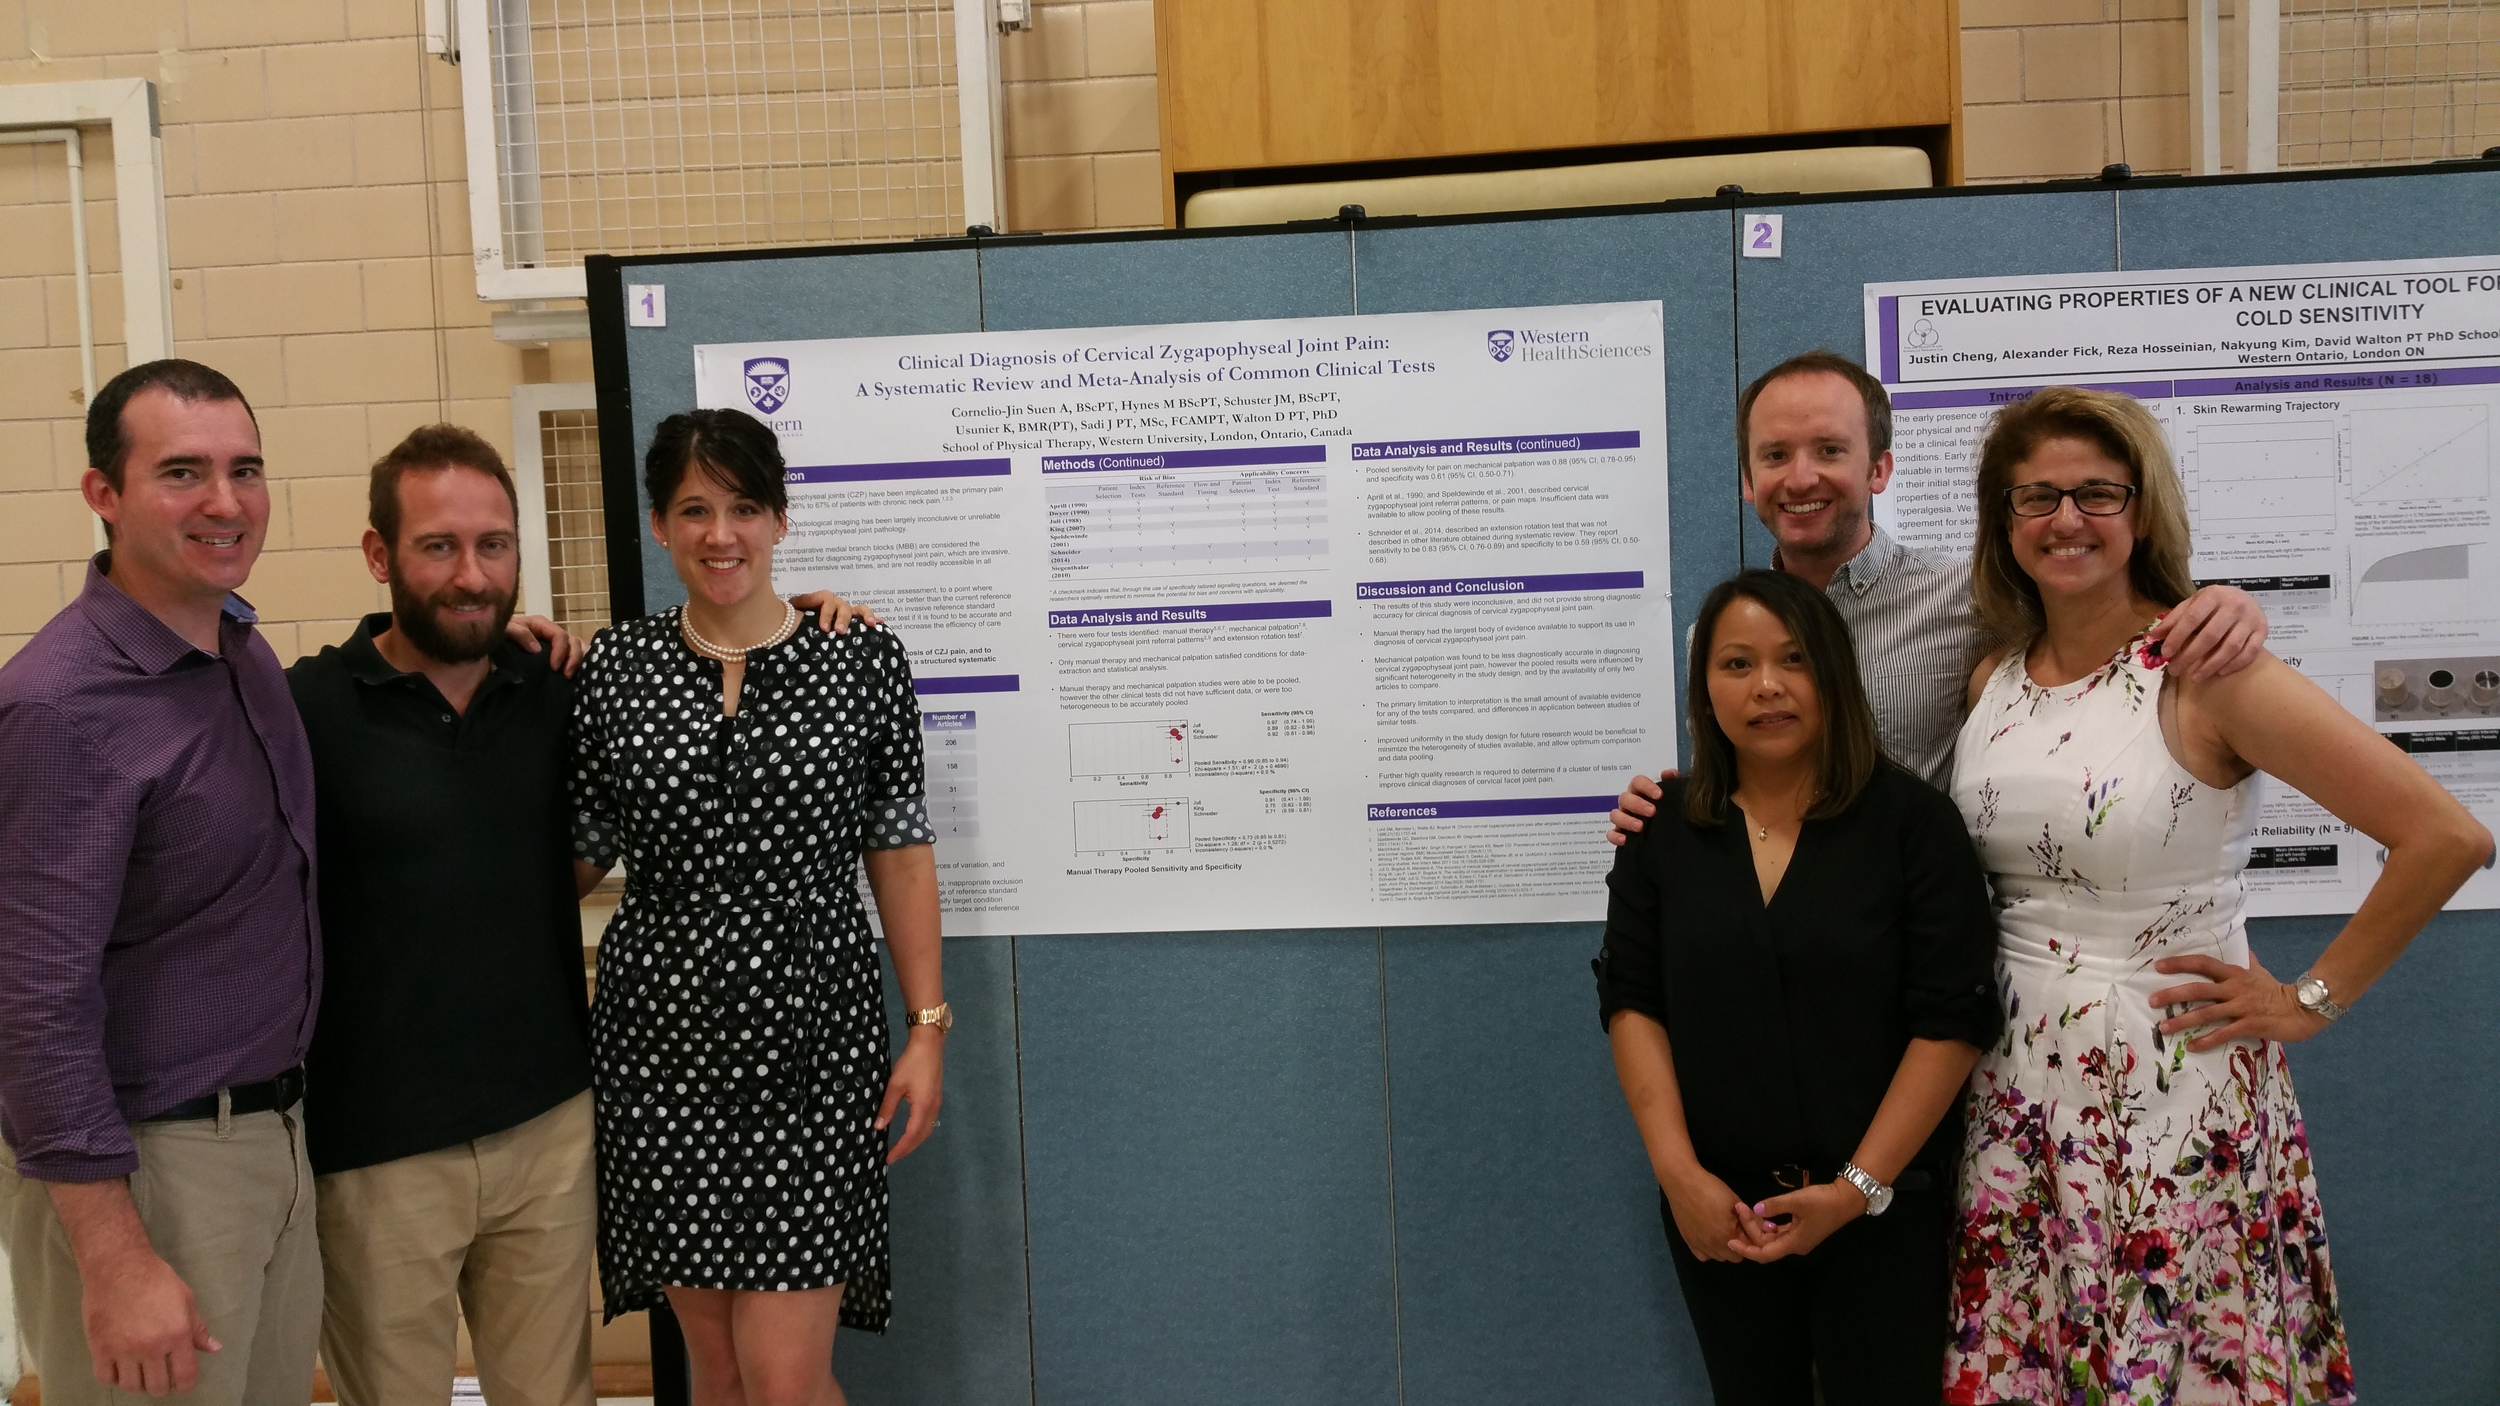 Dr. Dave Walton, James Schuster, Kendra Usunier, Annie Cornelio-Jin Suen, Mark Hynes and Prof. Jackie Sadi: Clinical Diagnosis of Cervical Facet Joint Pain: A systematic review and meta-analysis of common clinical tests